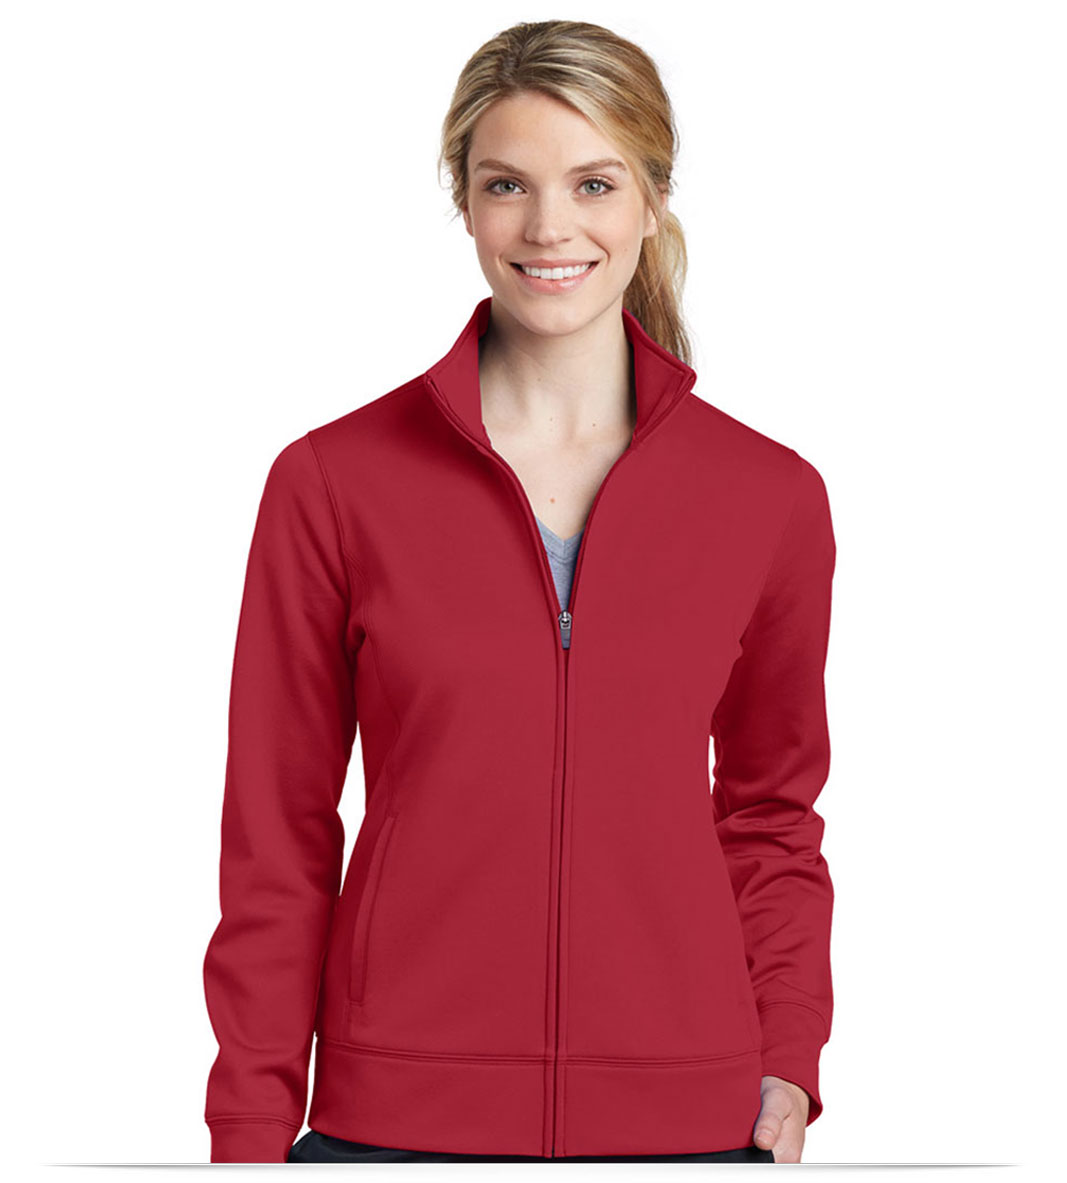 Personalized Sport-Tek Ladies Fleece Full-Zip Jacket